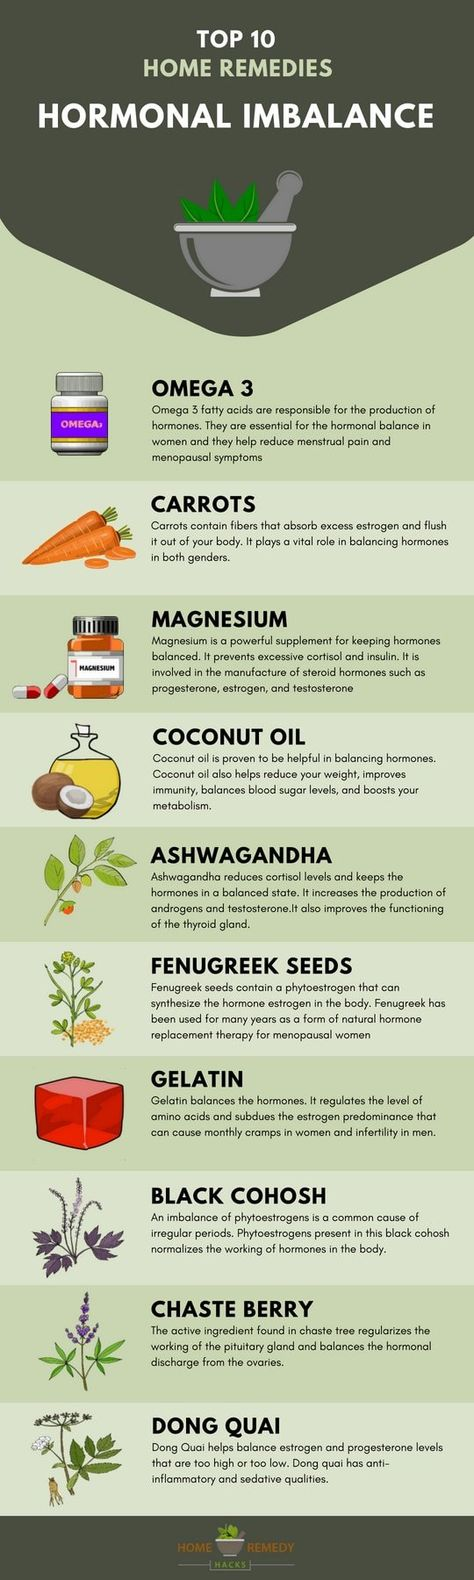 19 Natural Home Remedies For Hormonal Imbalance